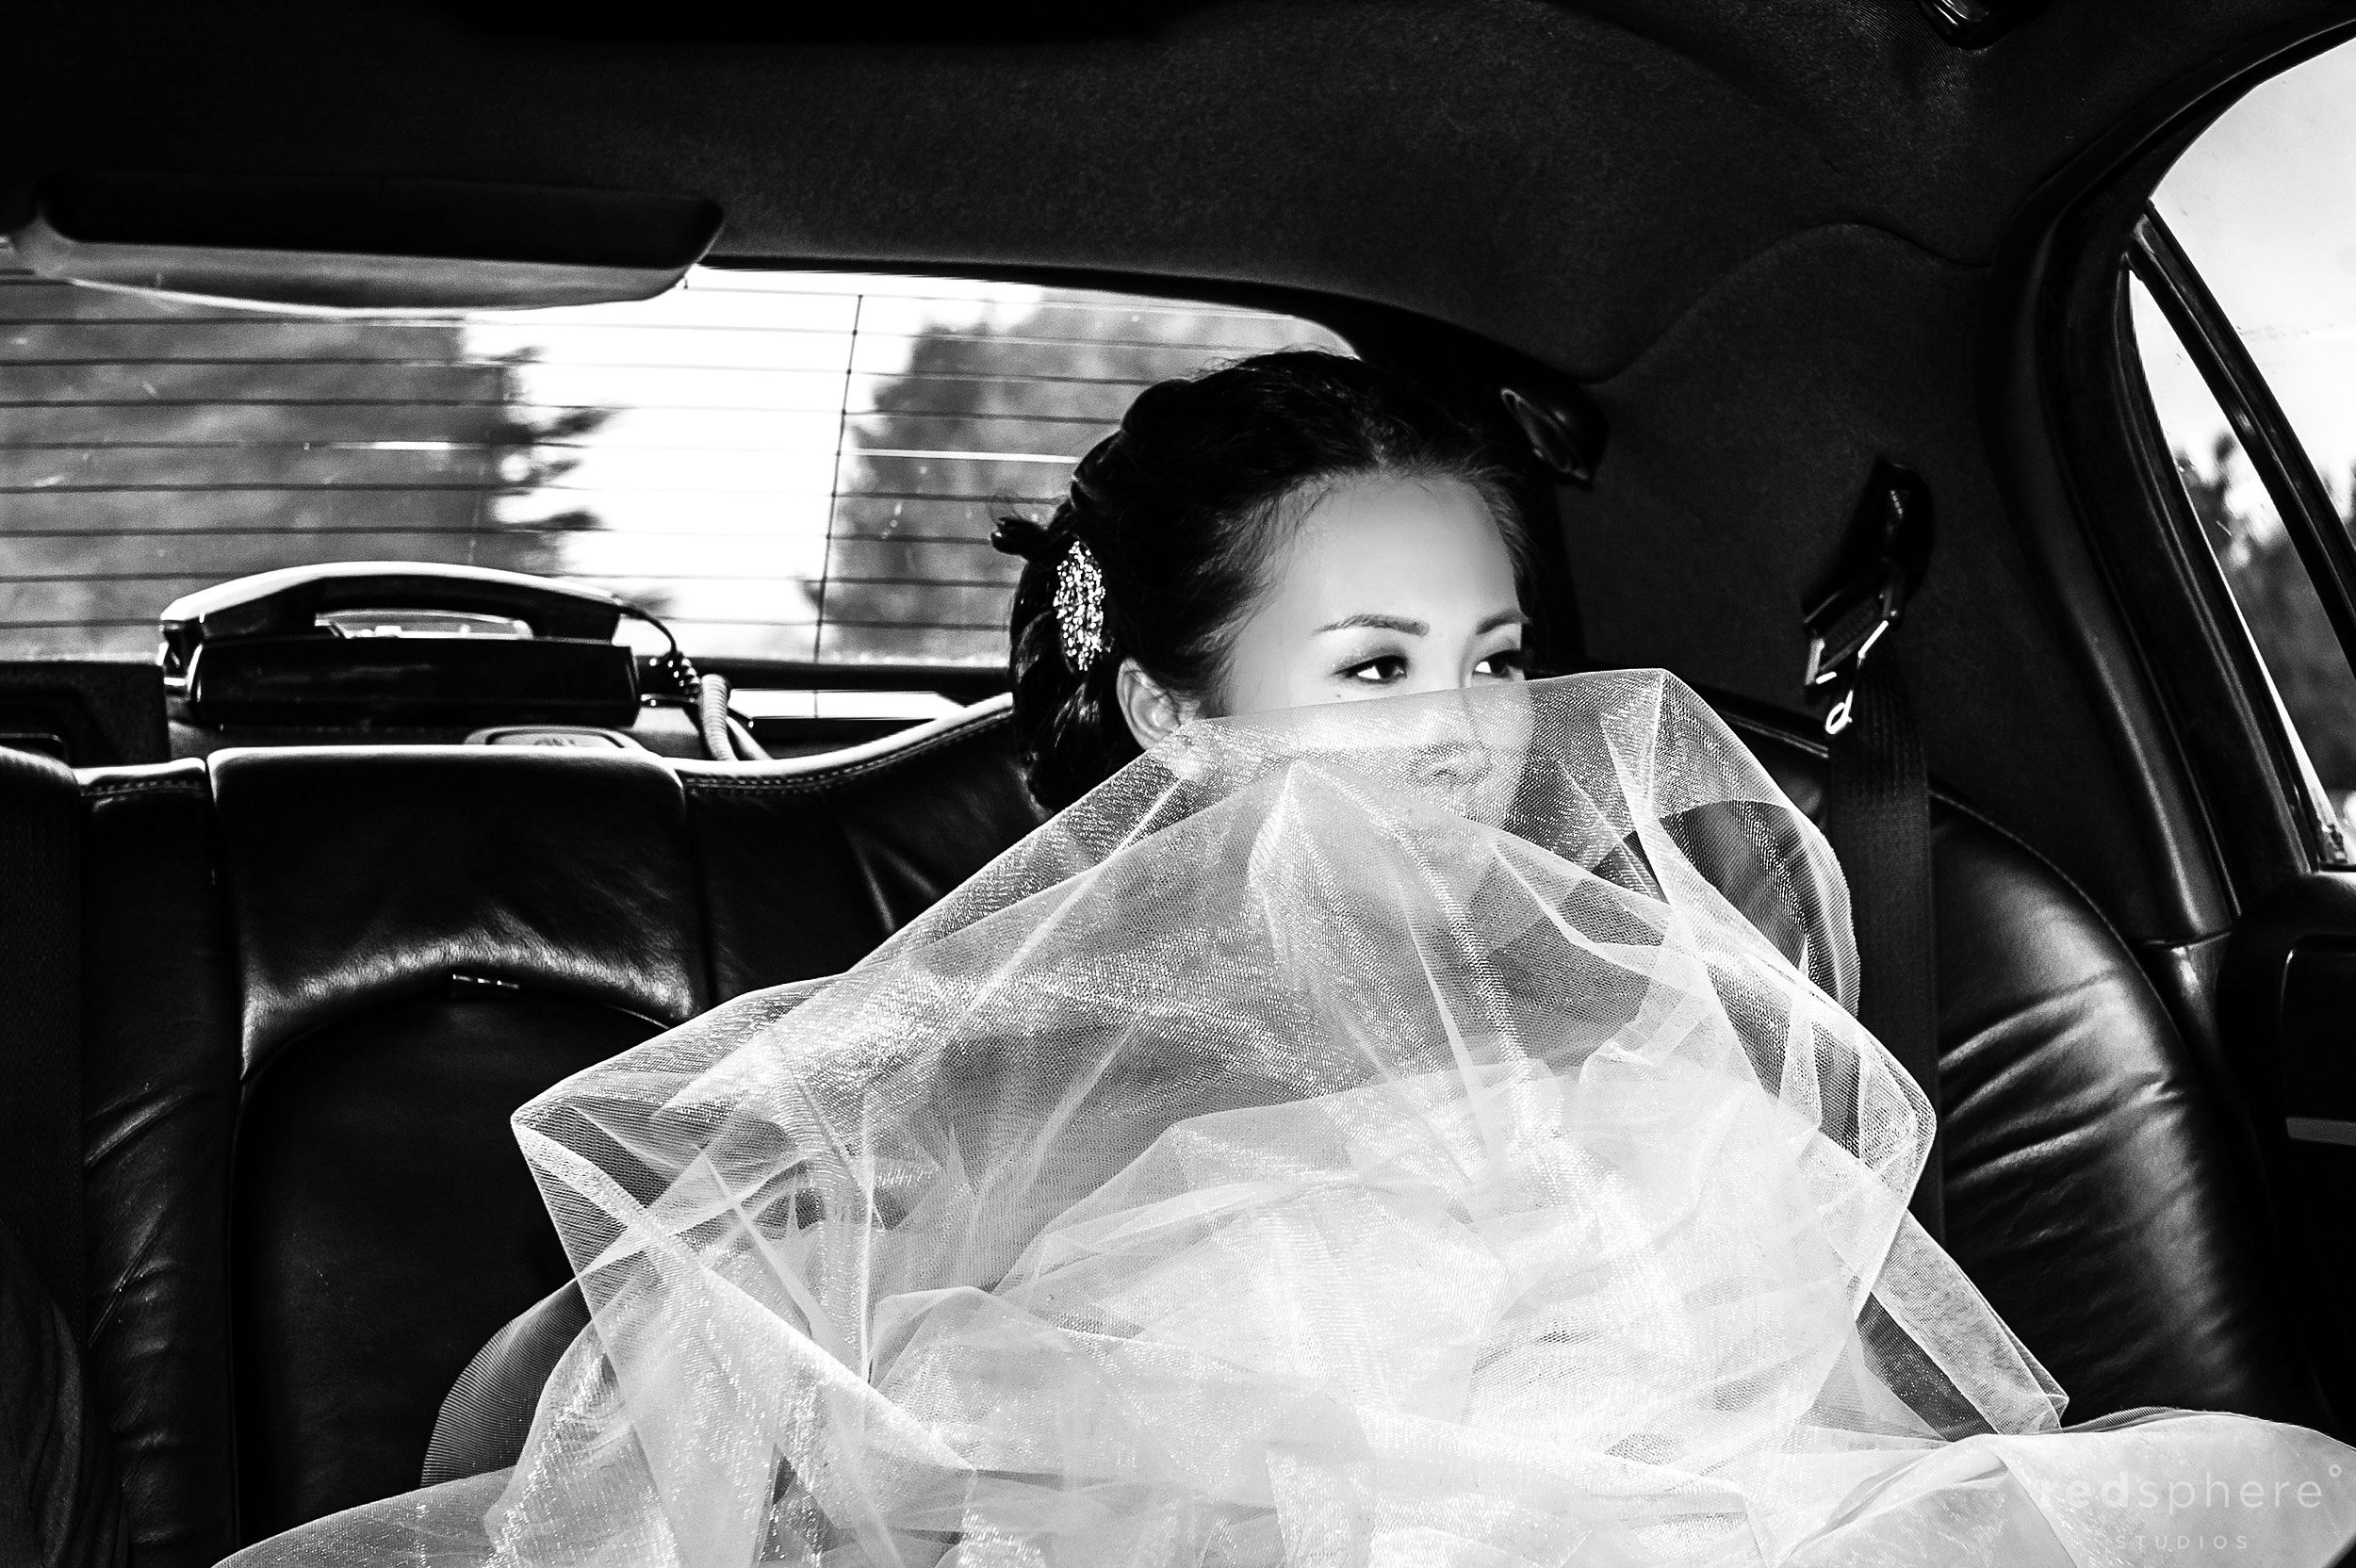 Bride In The Back Of The Limo While Veil's On Her Lap, Black and White